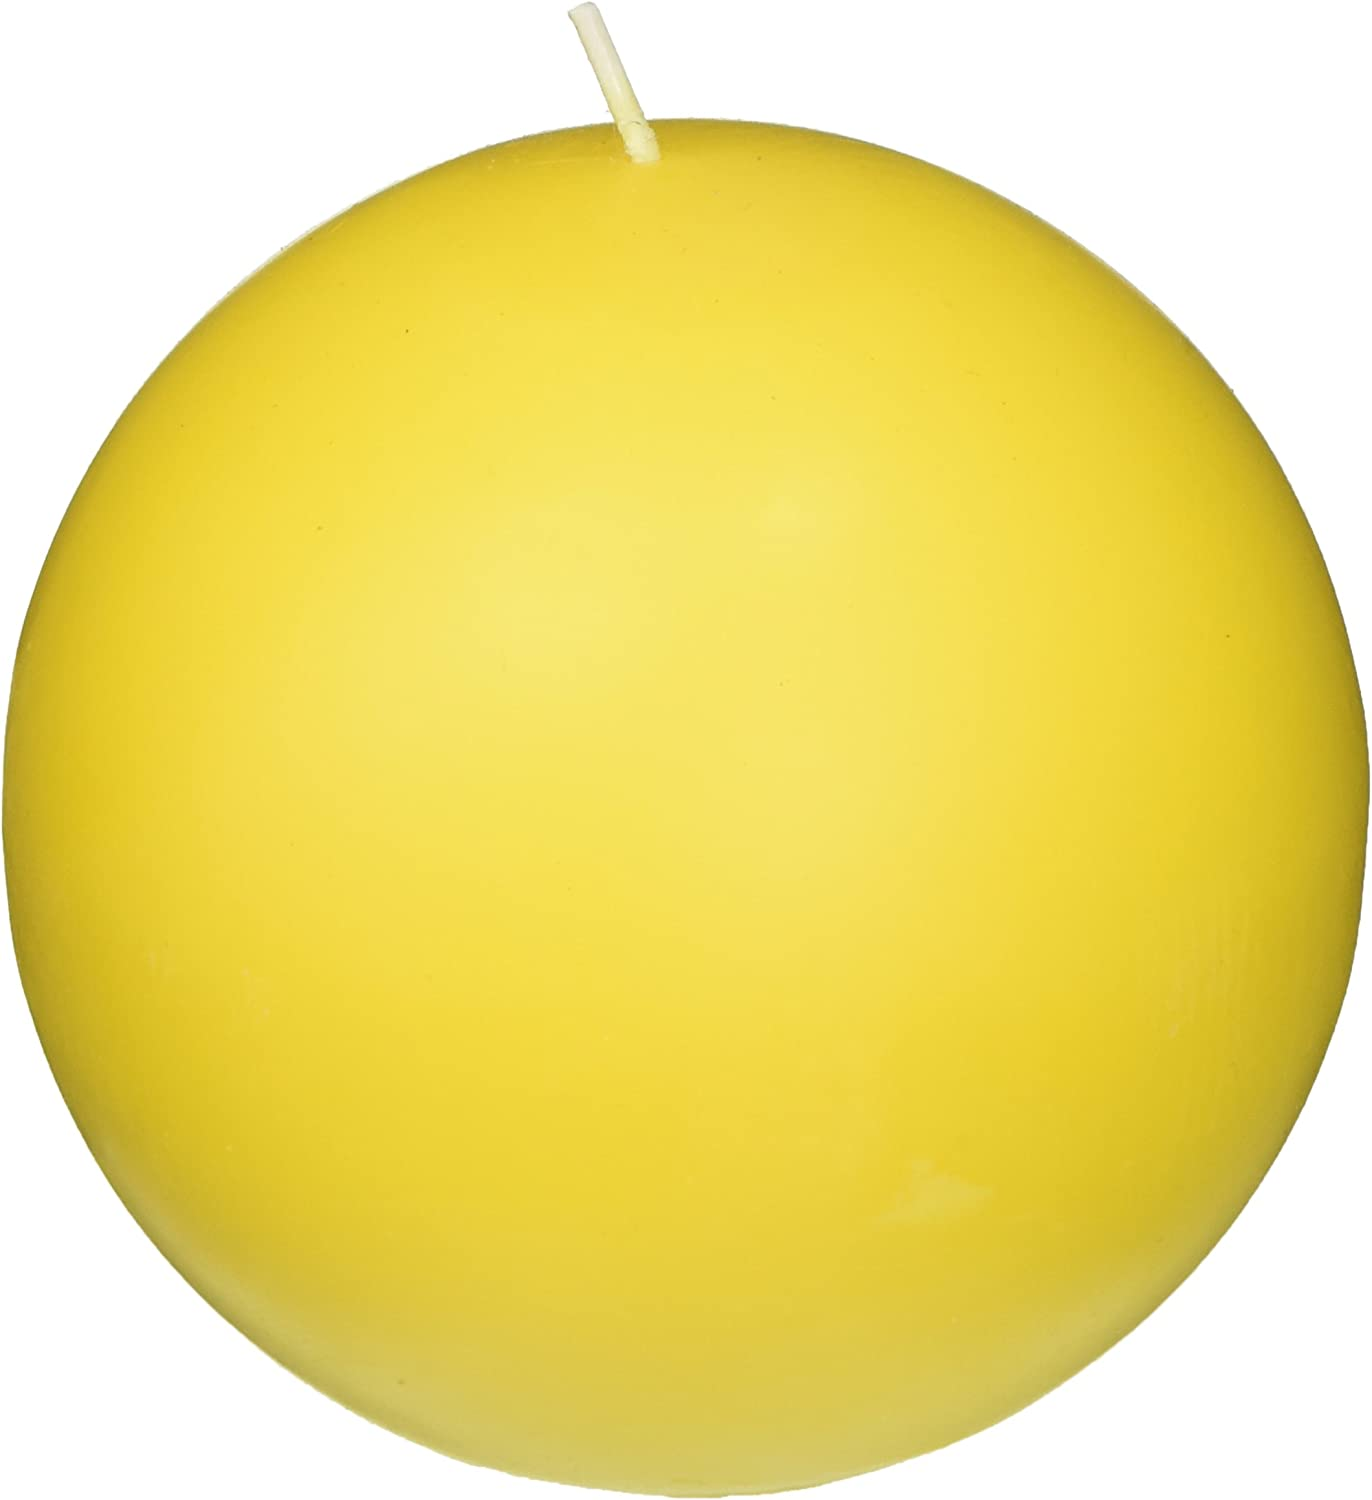 Zest Candle 2-Piece Ball Candles Yellow 4-Inch Clearance SALE! Limited time! 70% OFF Outlet